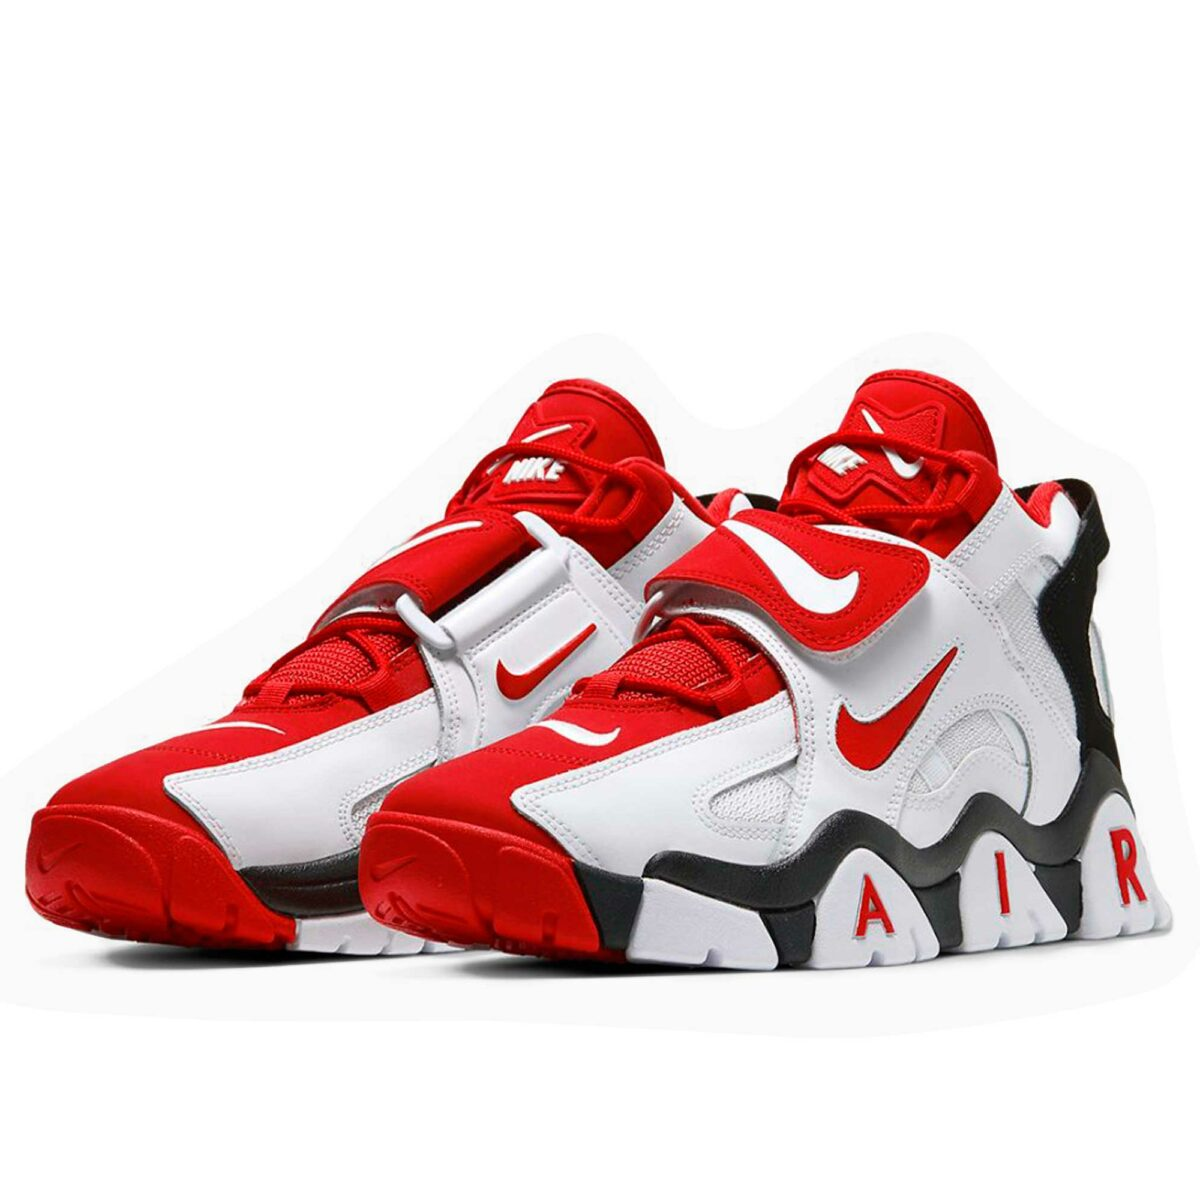 nike air barrage white red black AT7847_102 купить